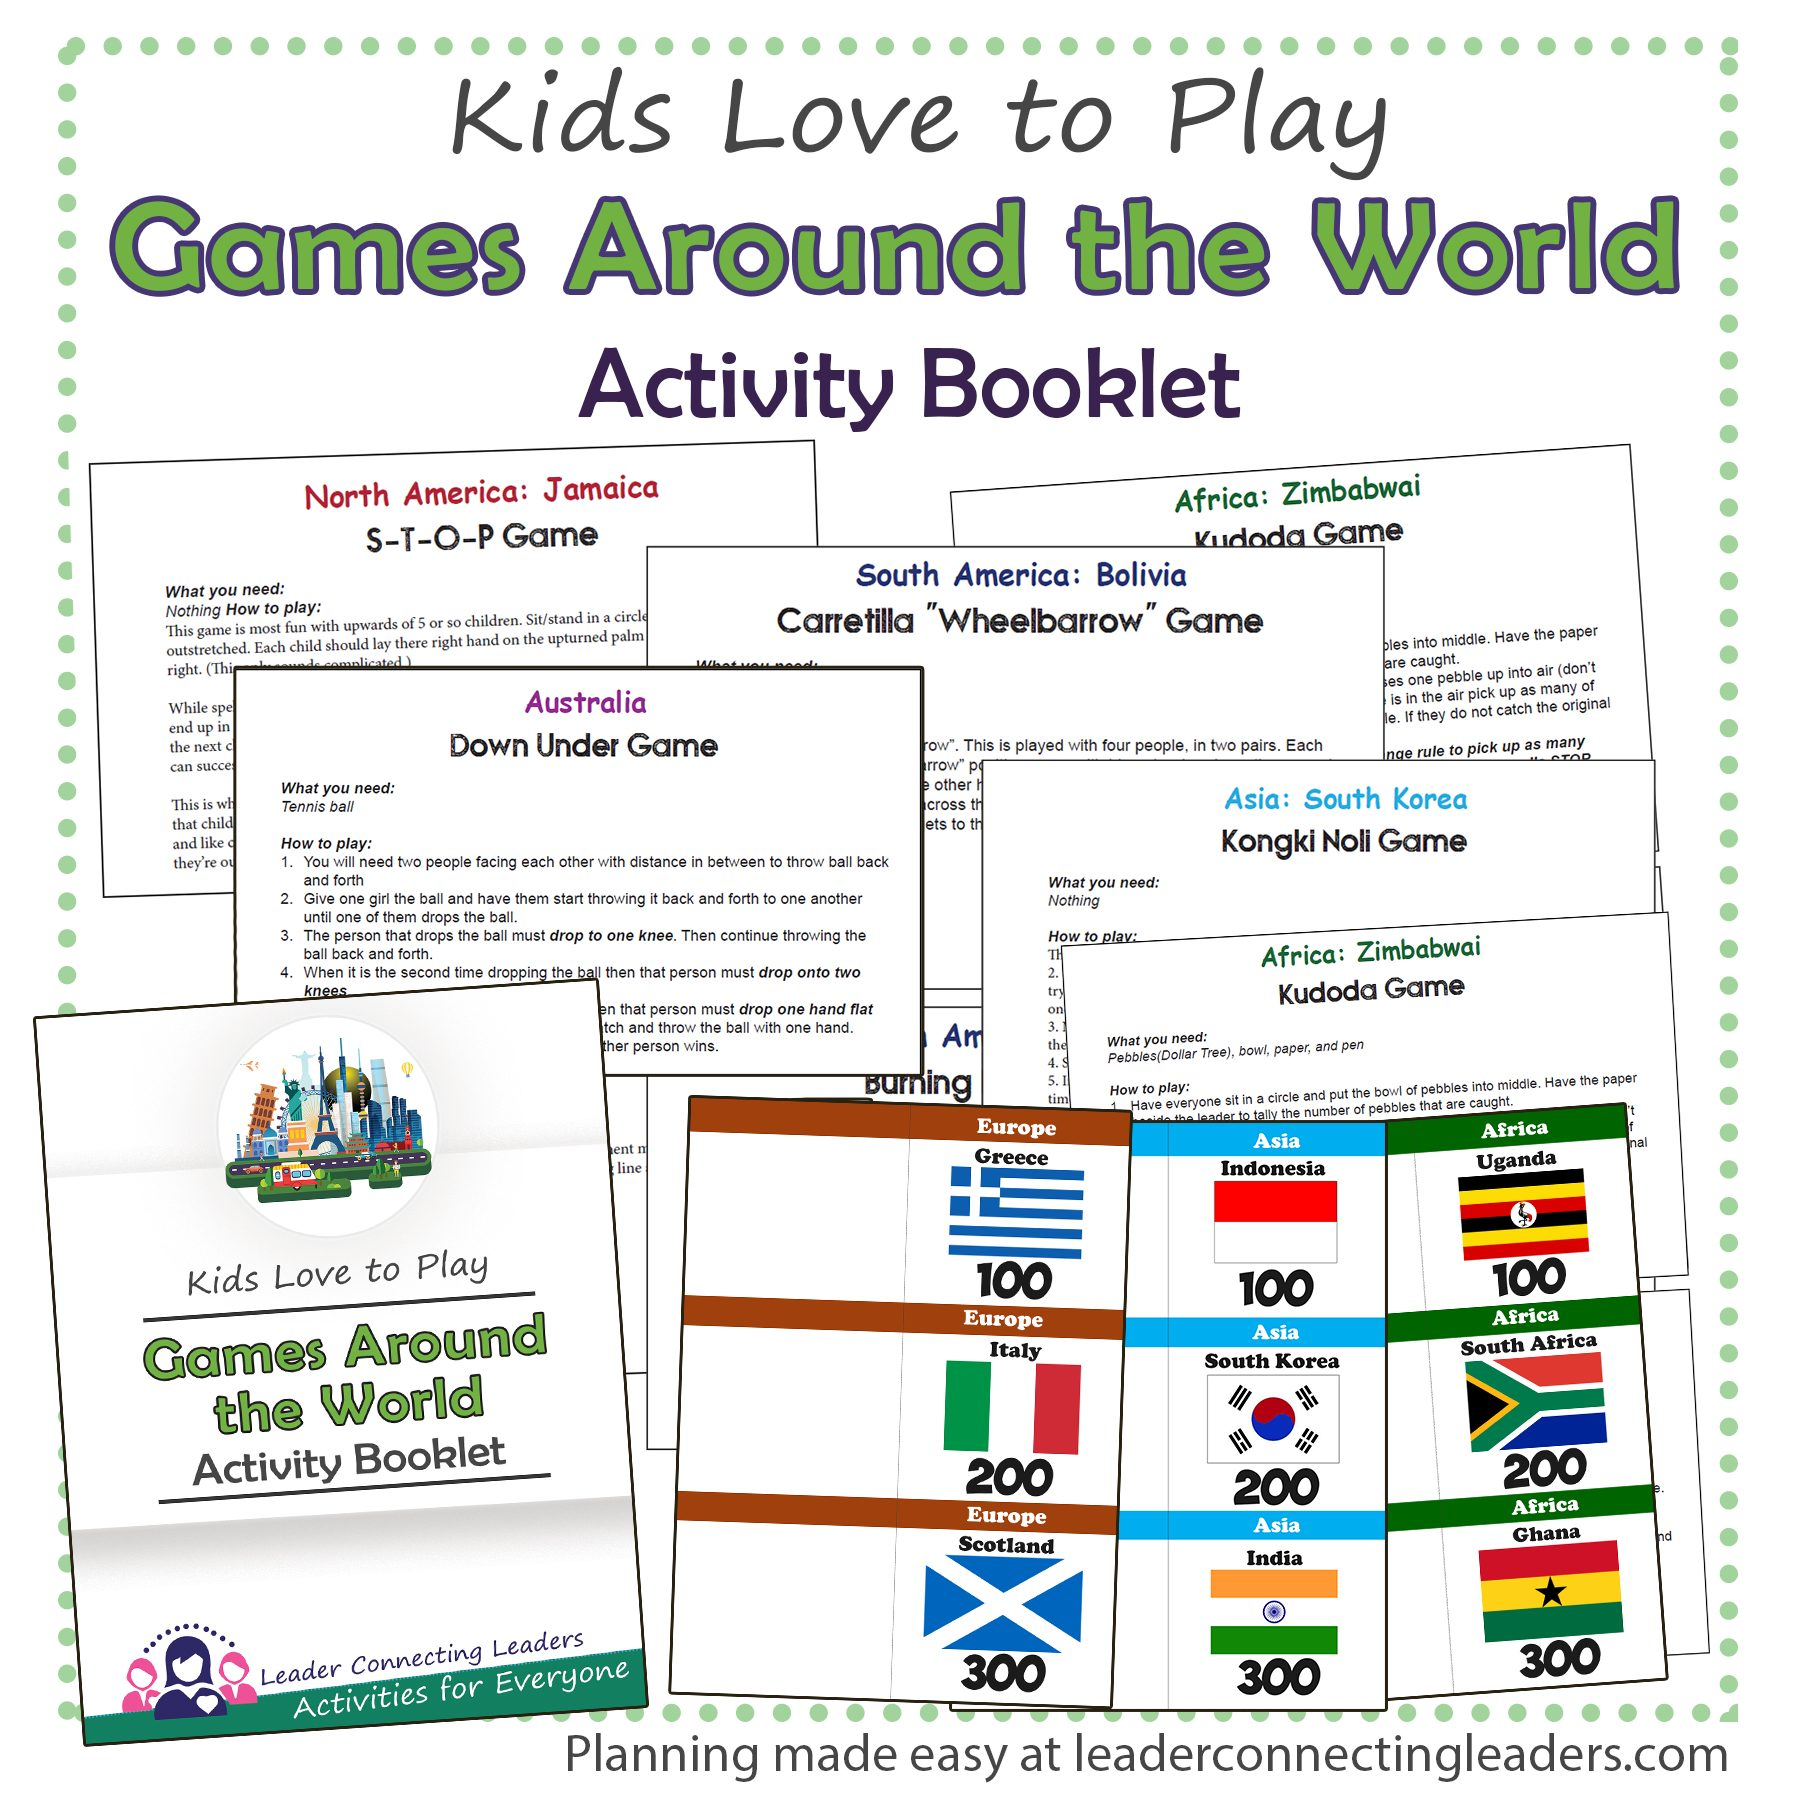 Games Around The World Activity Booklet